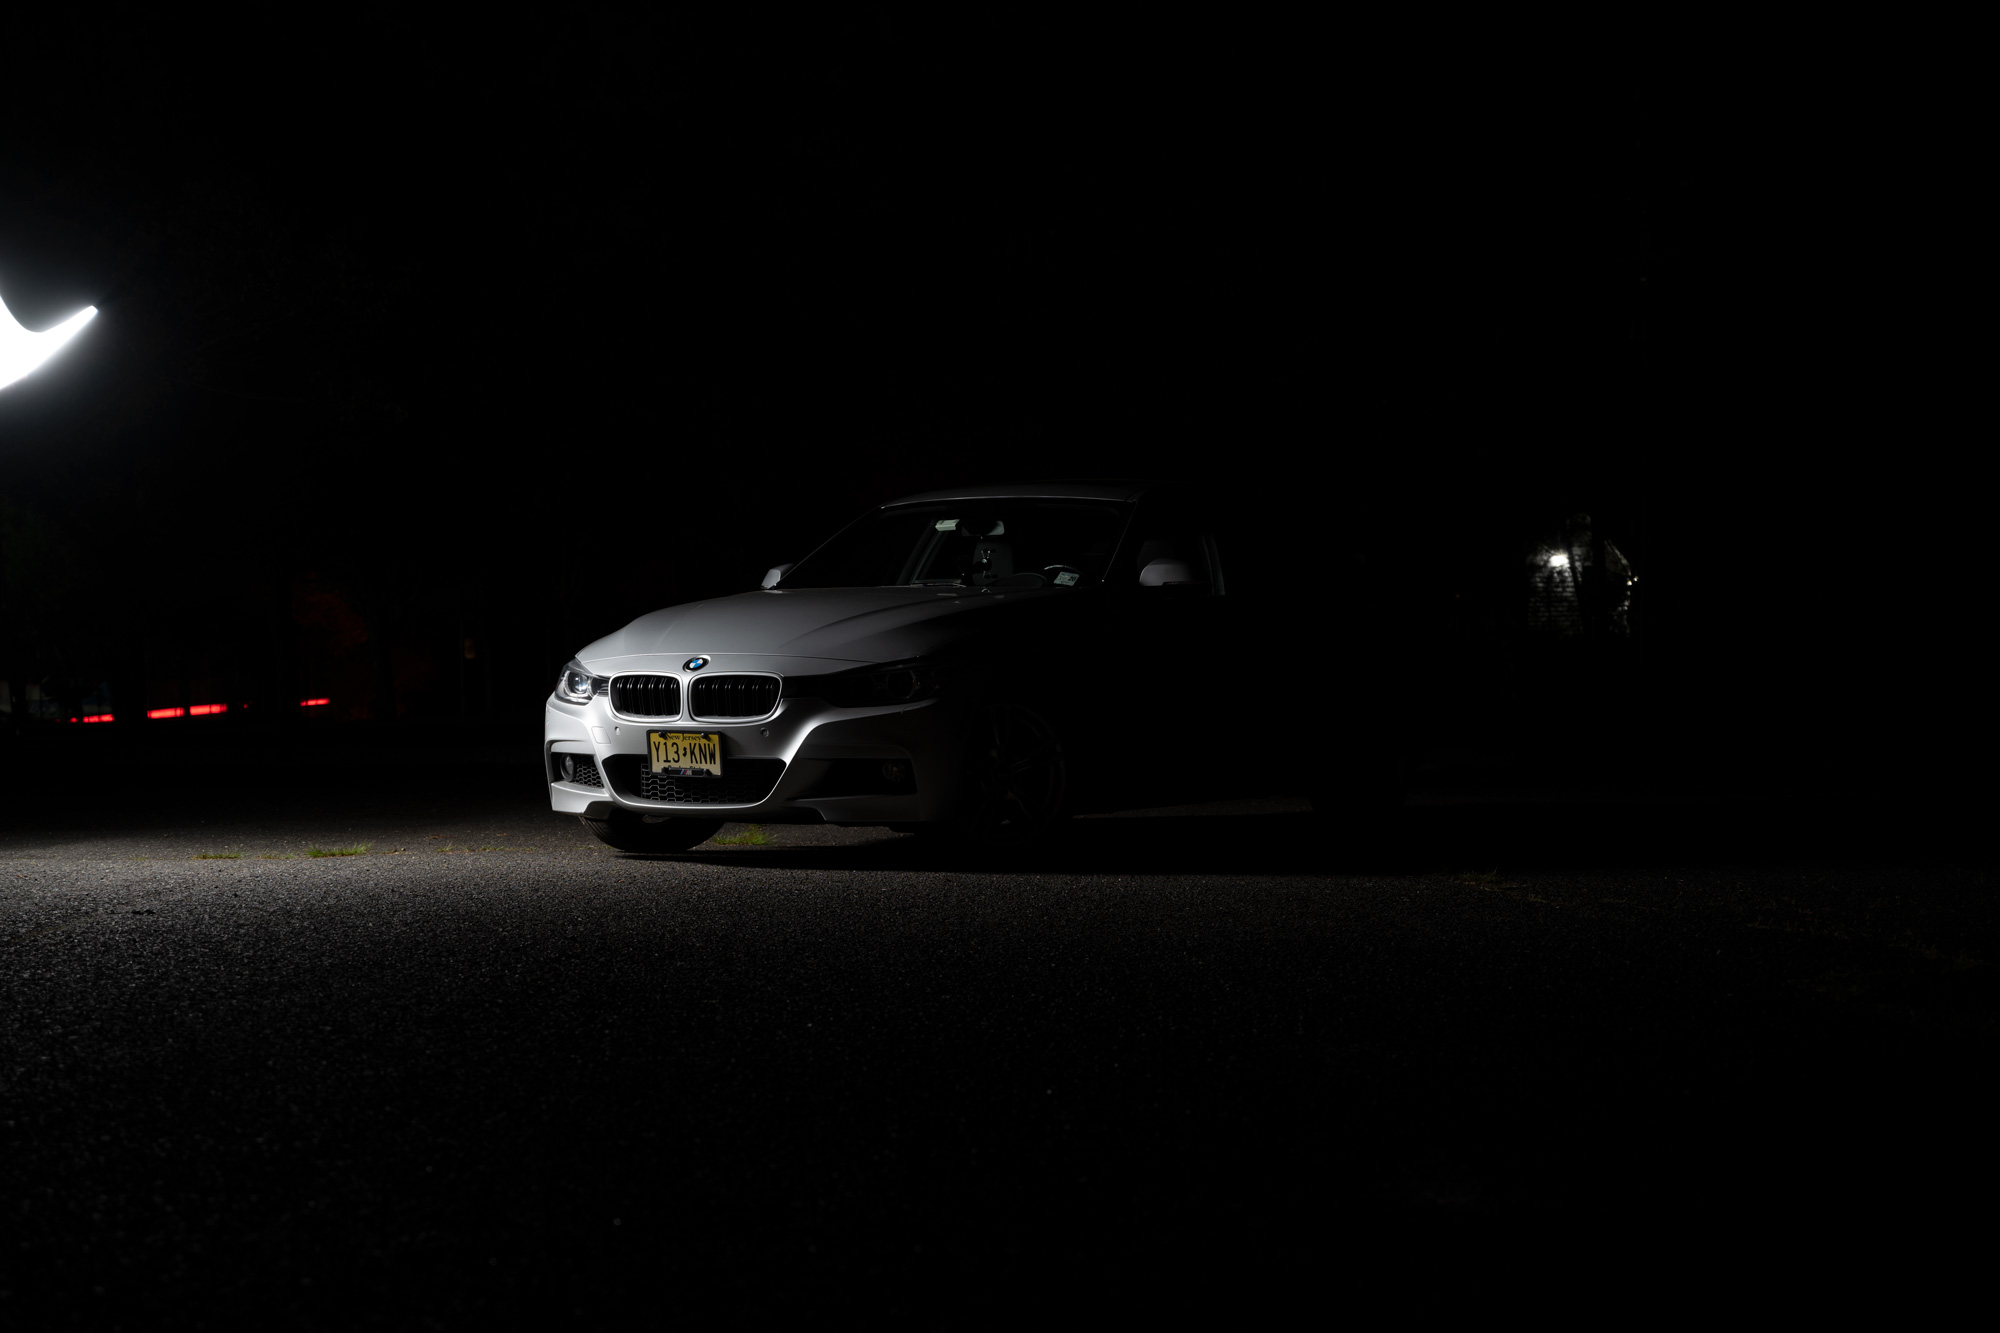 BMW 335i light painting demo